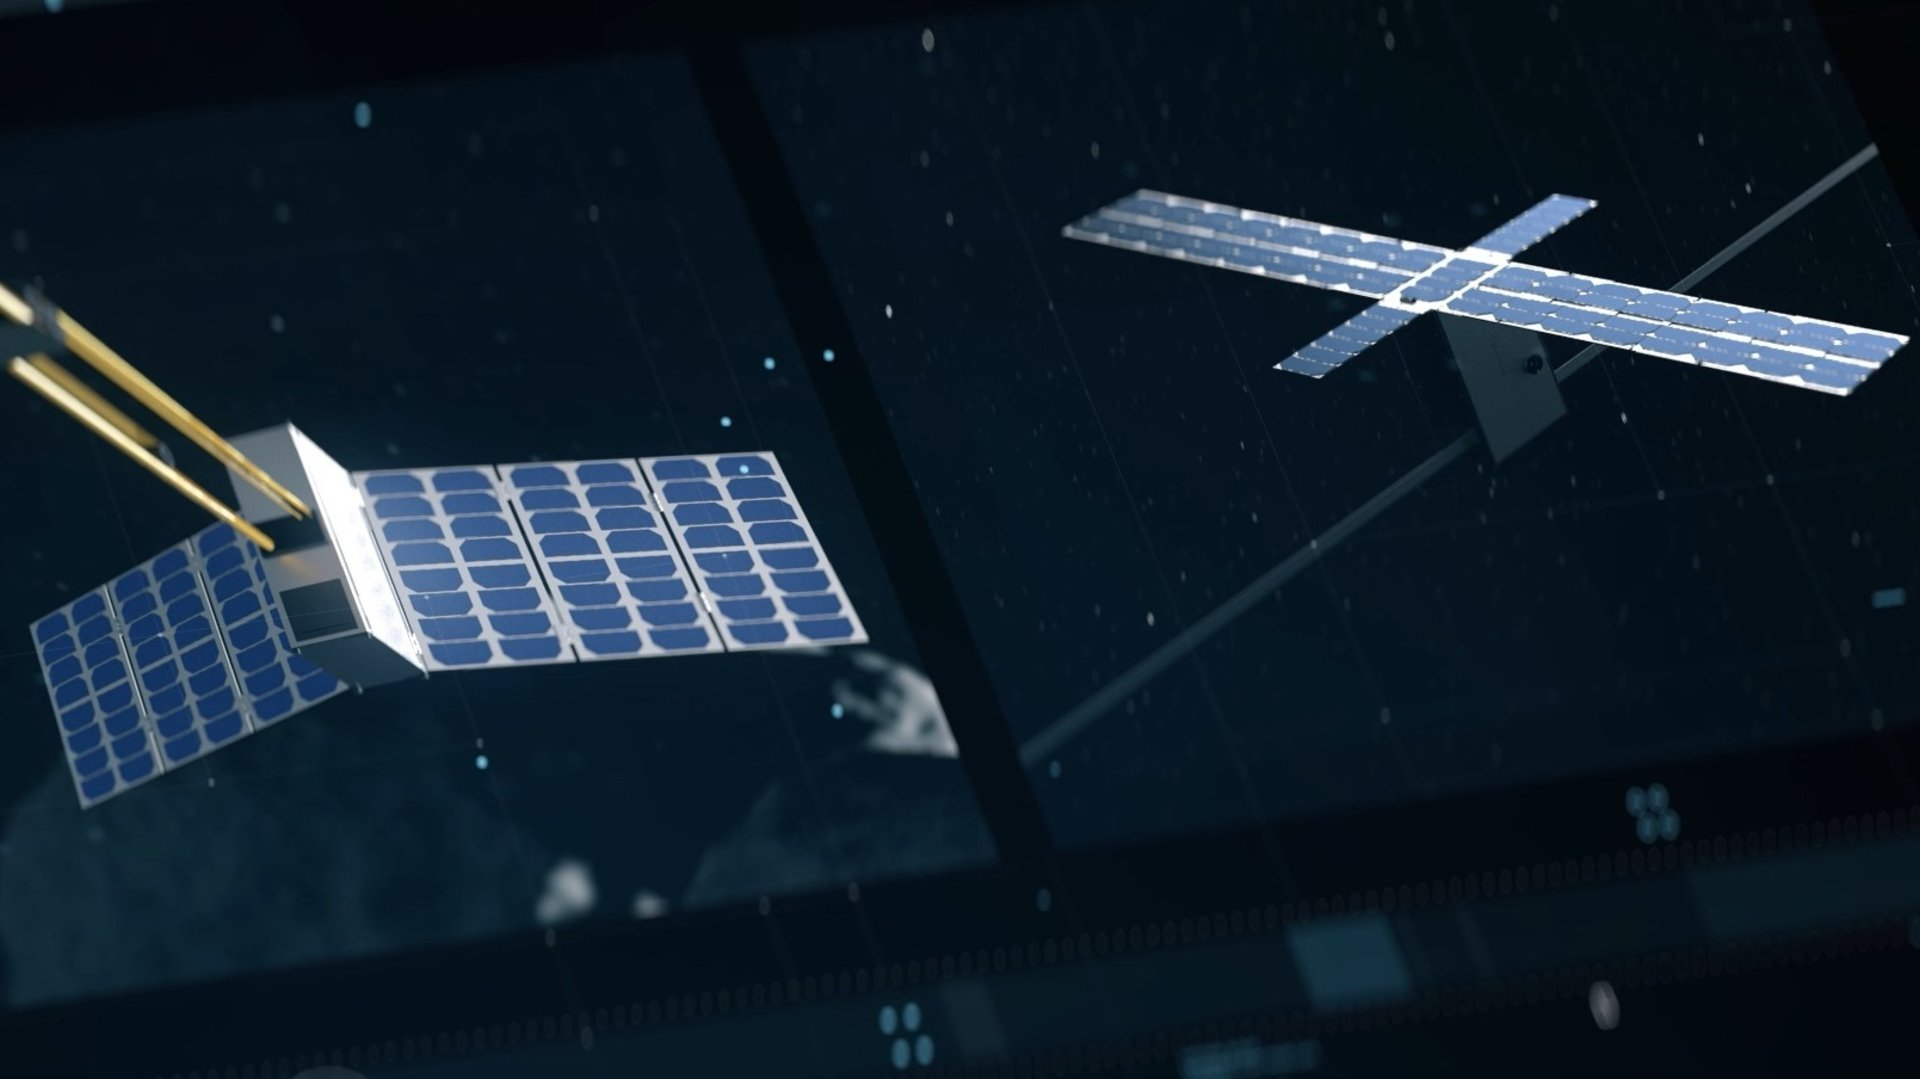 Deep space CubeSats / Hera / Space Safety / Our Activities